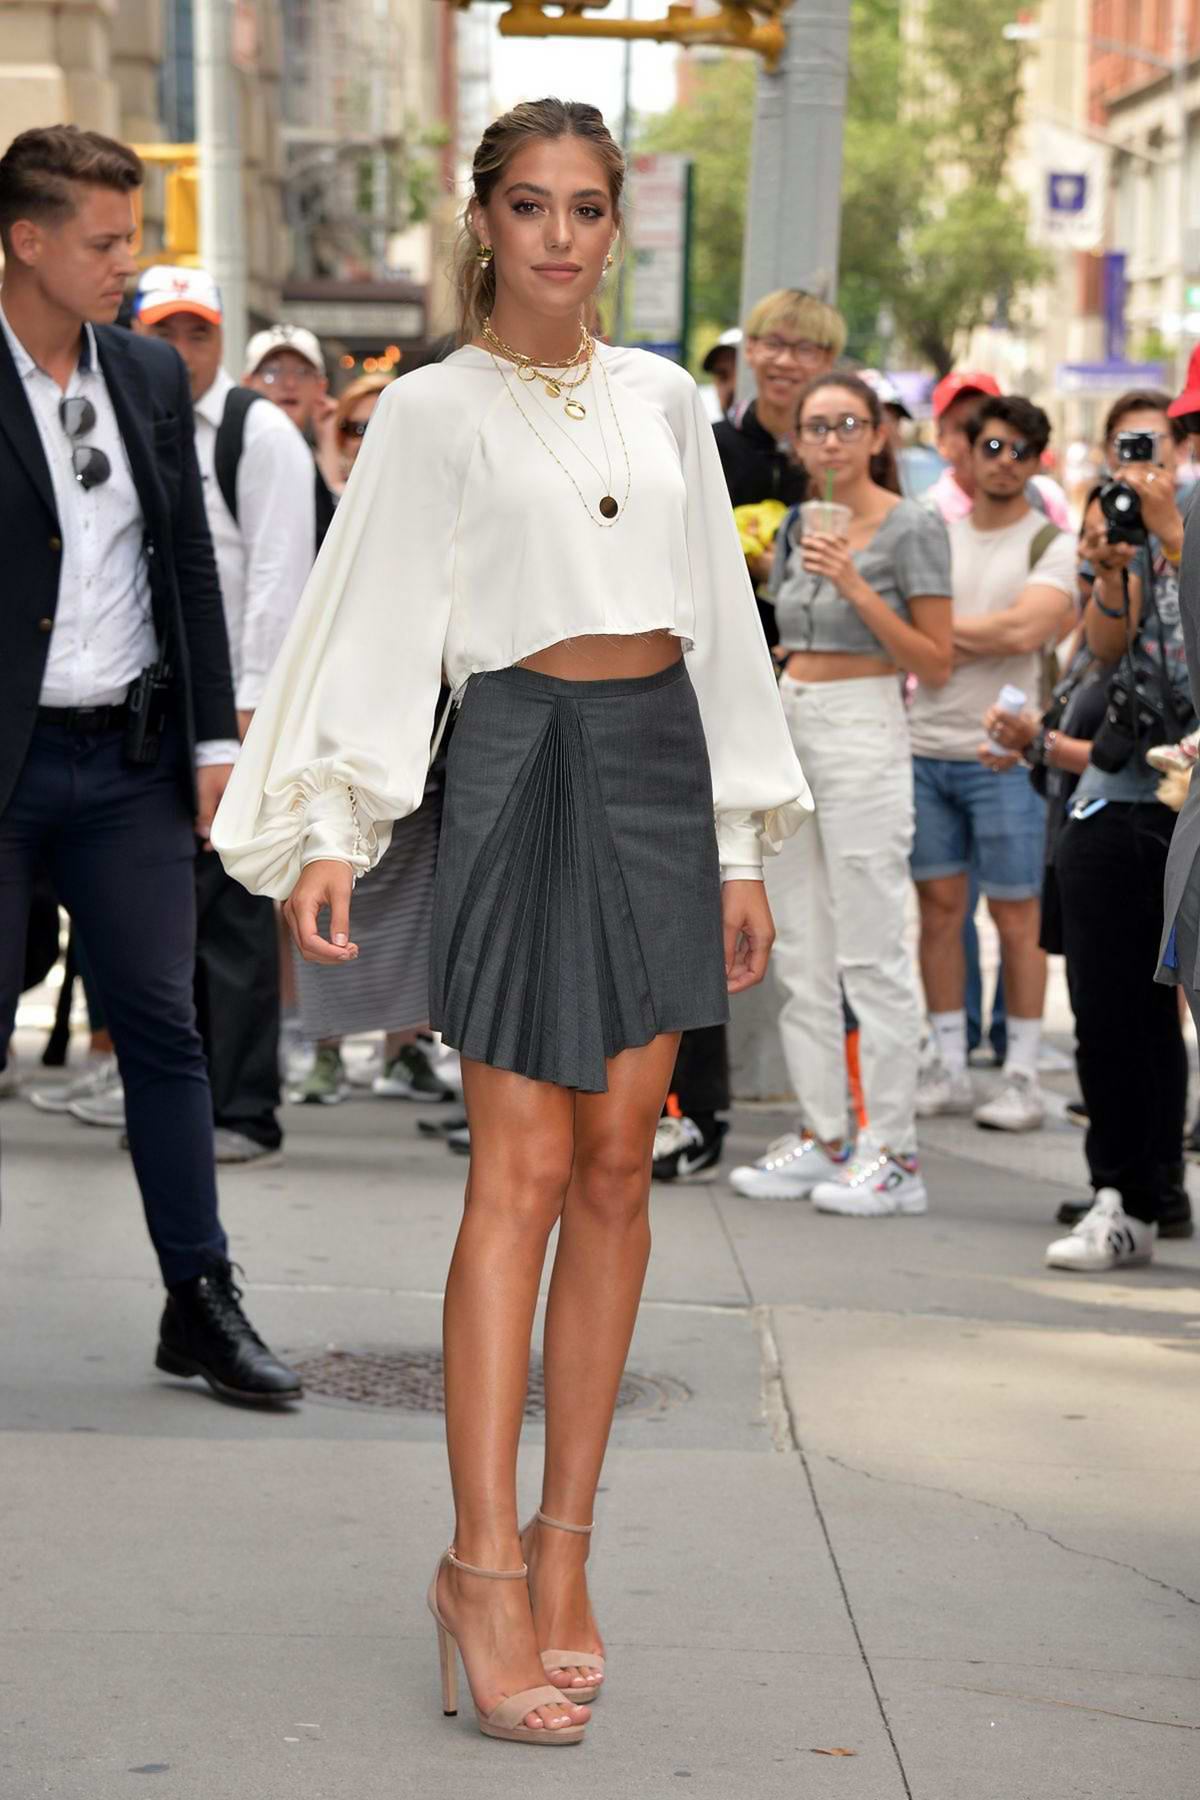 Sistine Stallone strikes a pose in a white crop top and grey skirt outside Build Studio in New York City